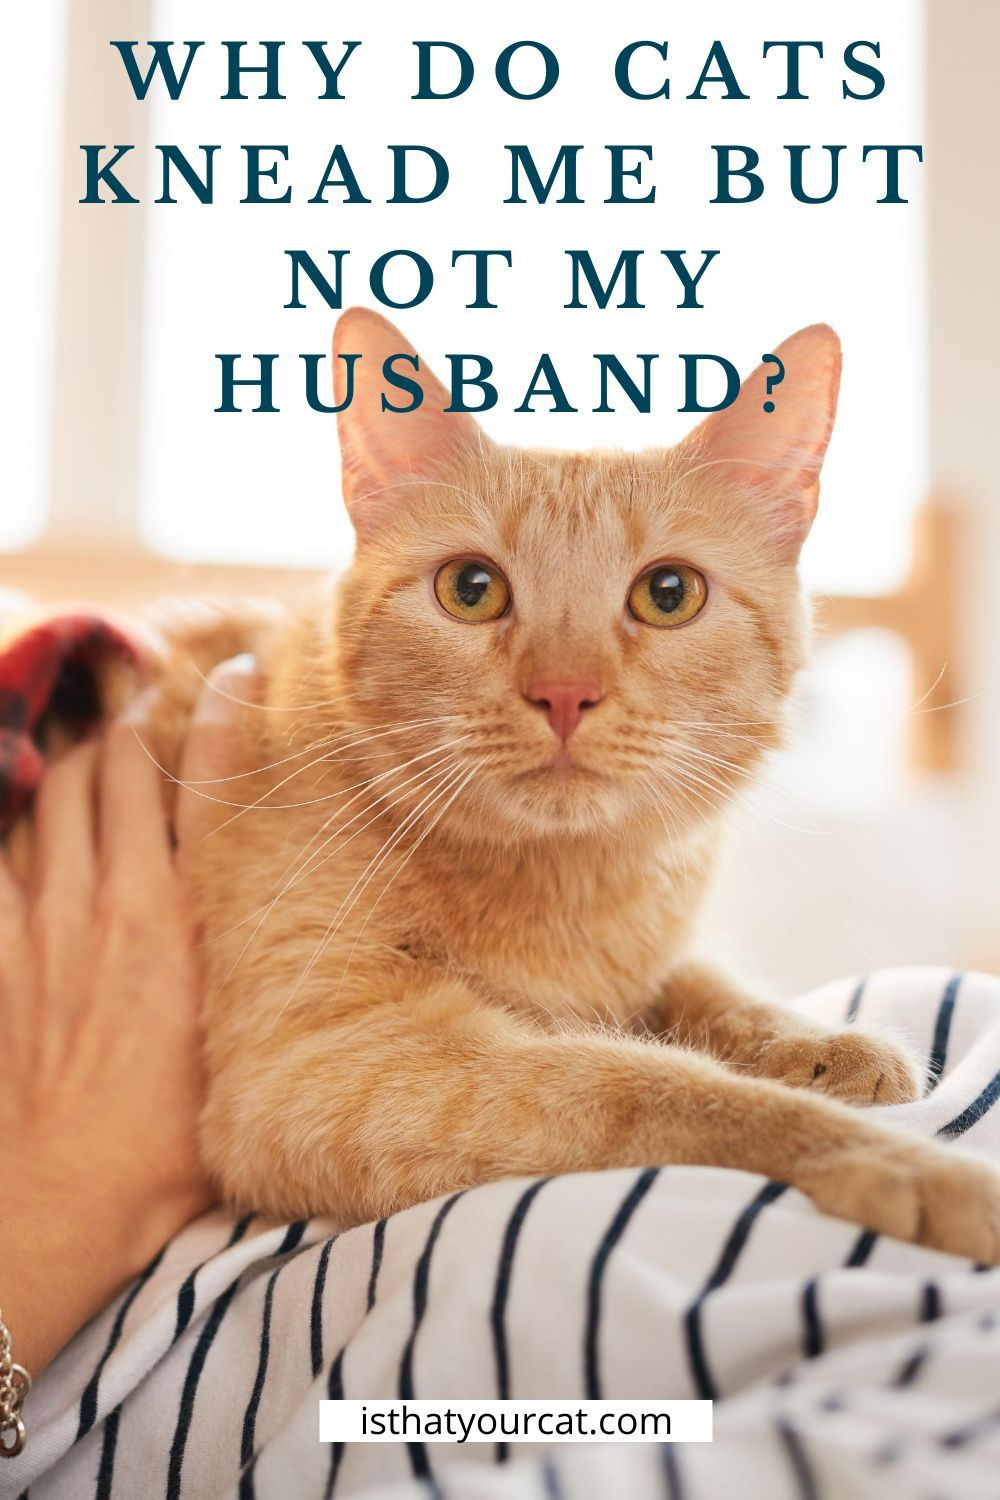 Why Does My Cat Knead Me And Not My Husband? Behavior in